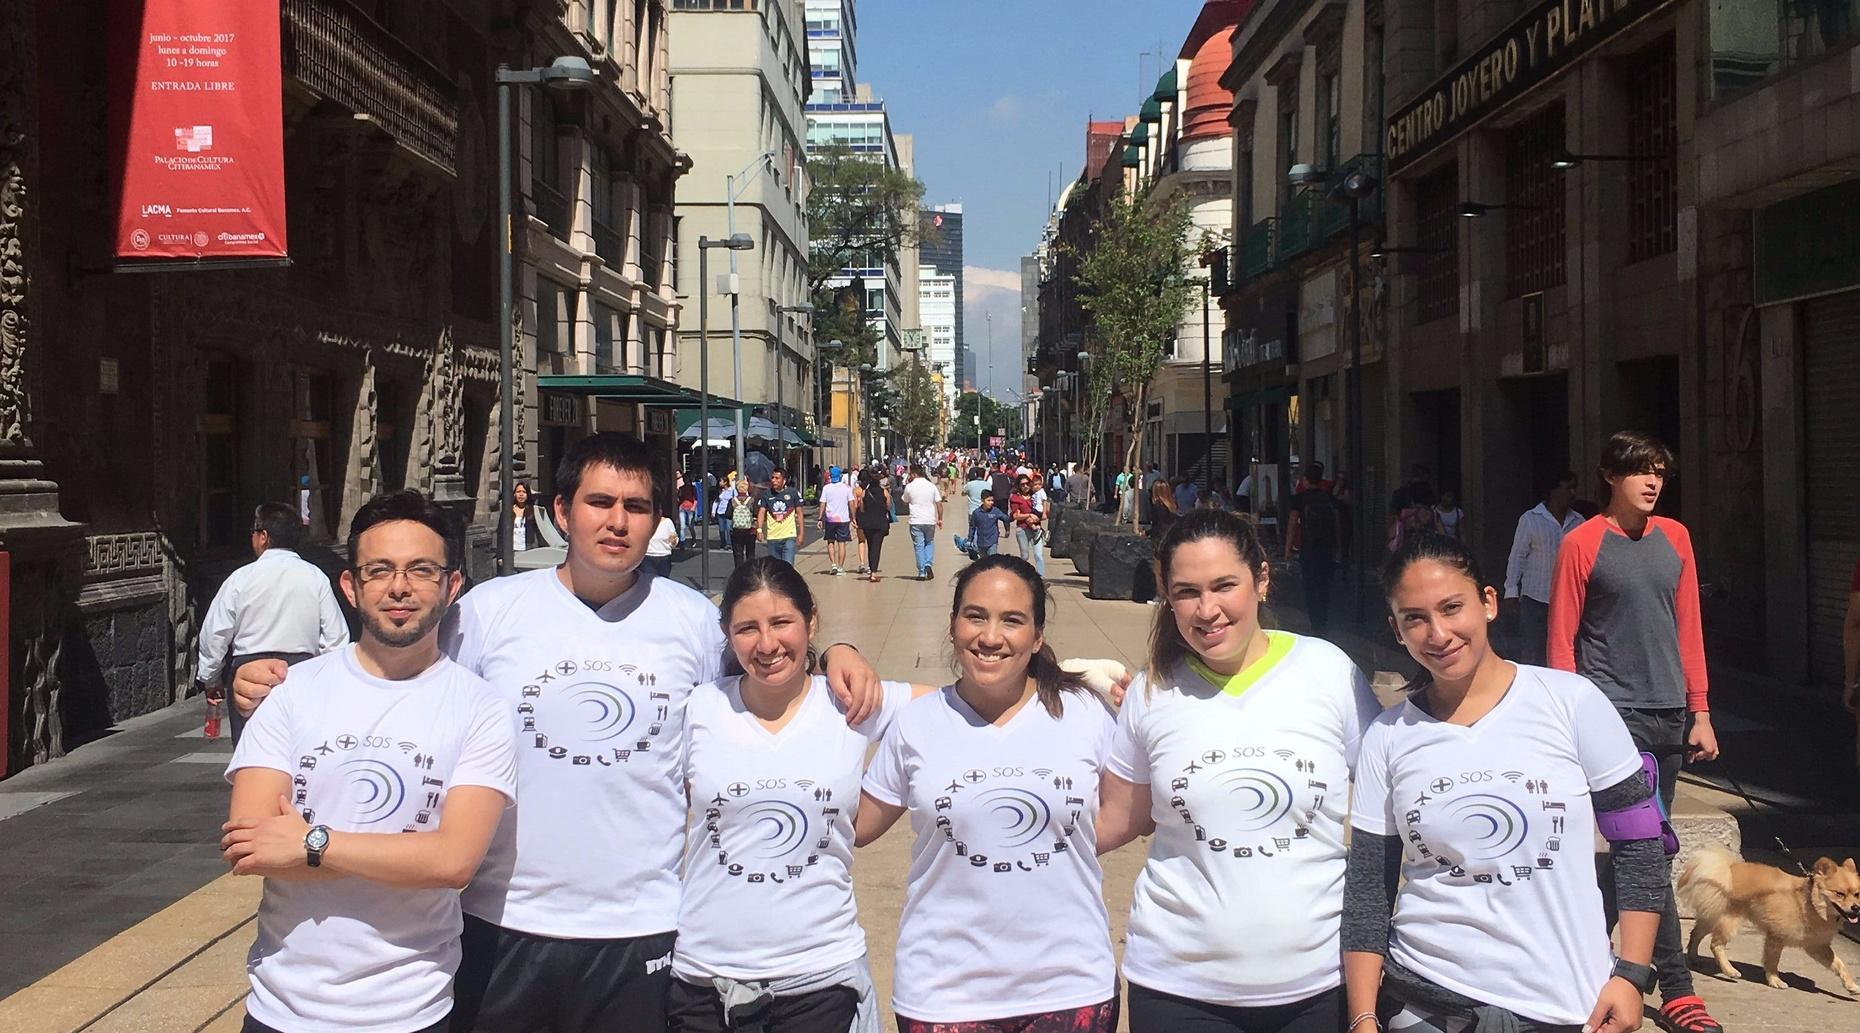 5K Running & Sightseeing Tour in Mexico City